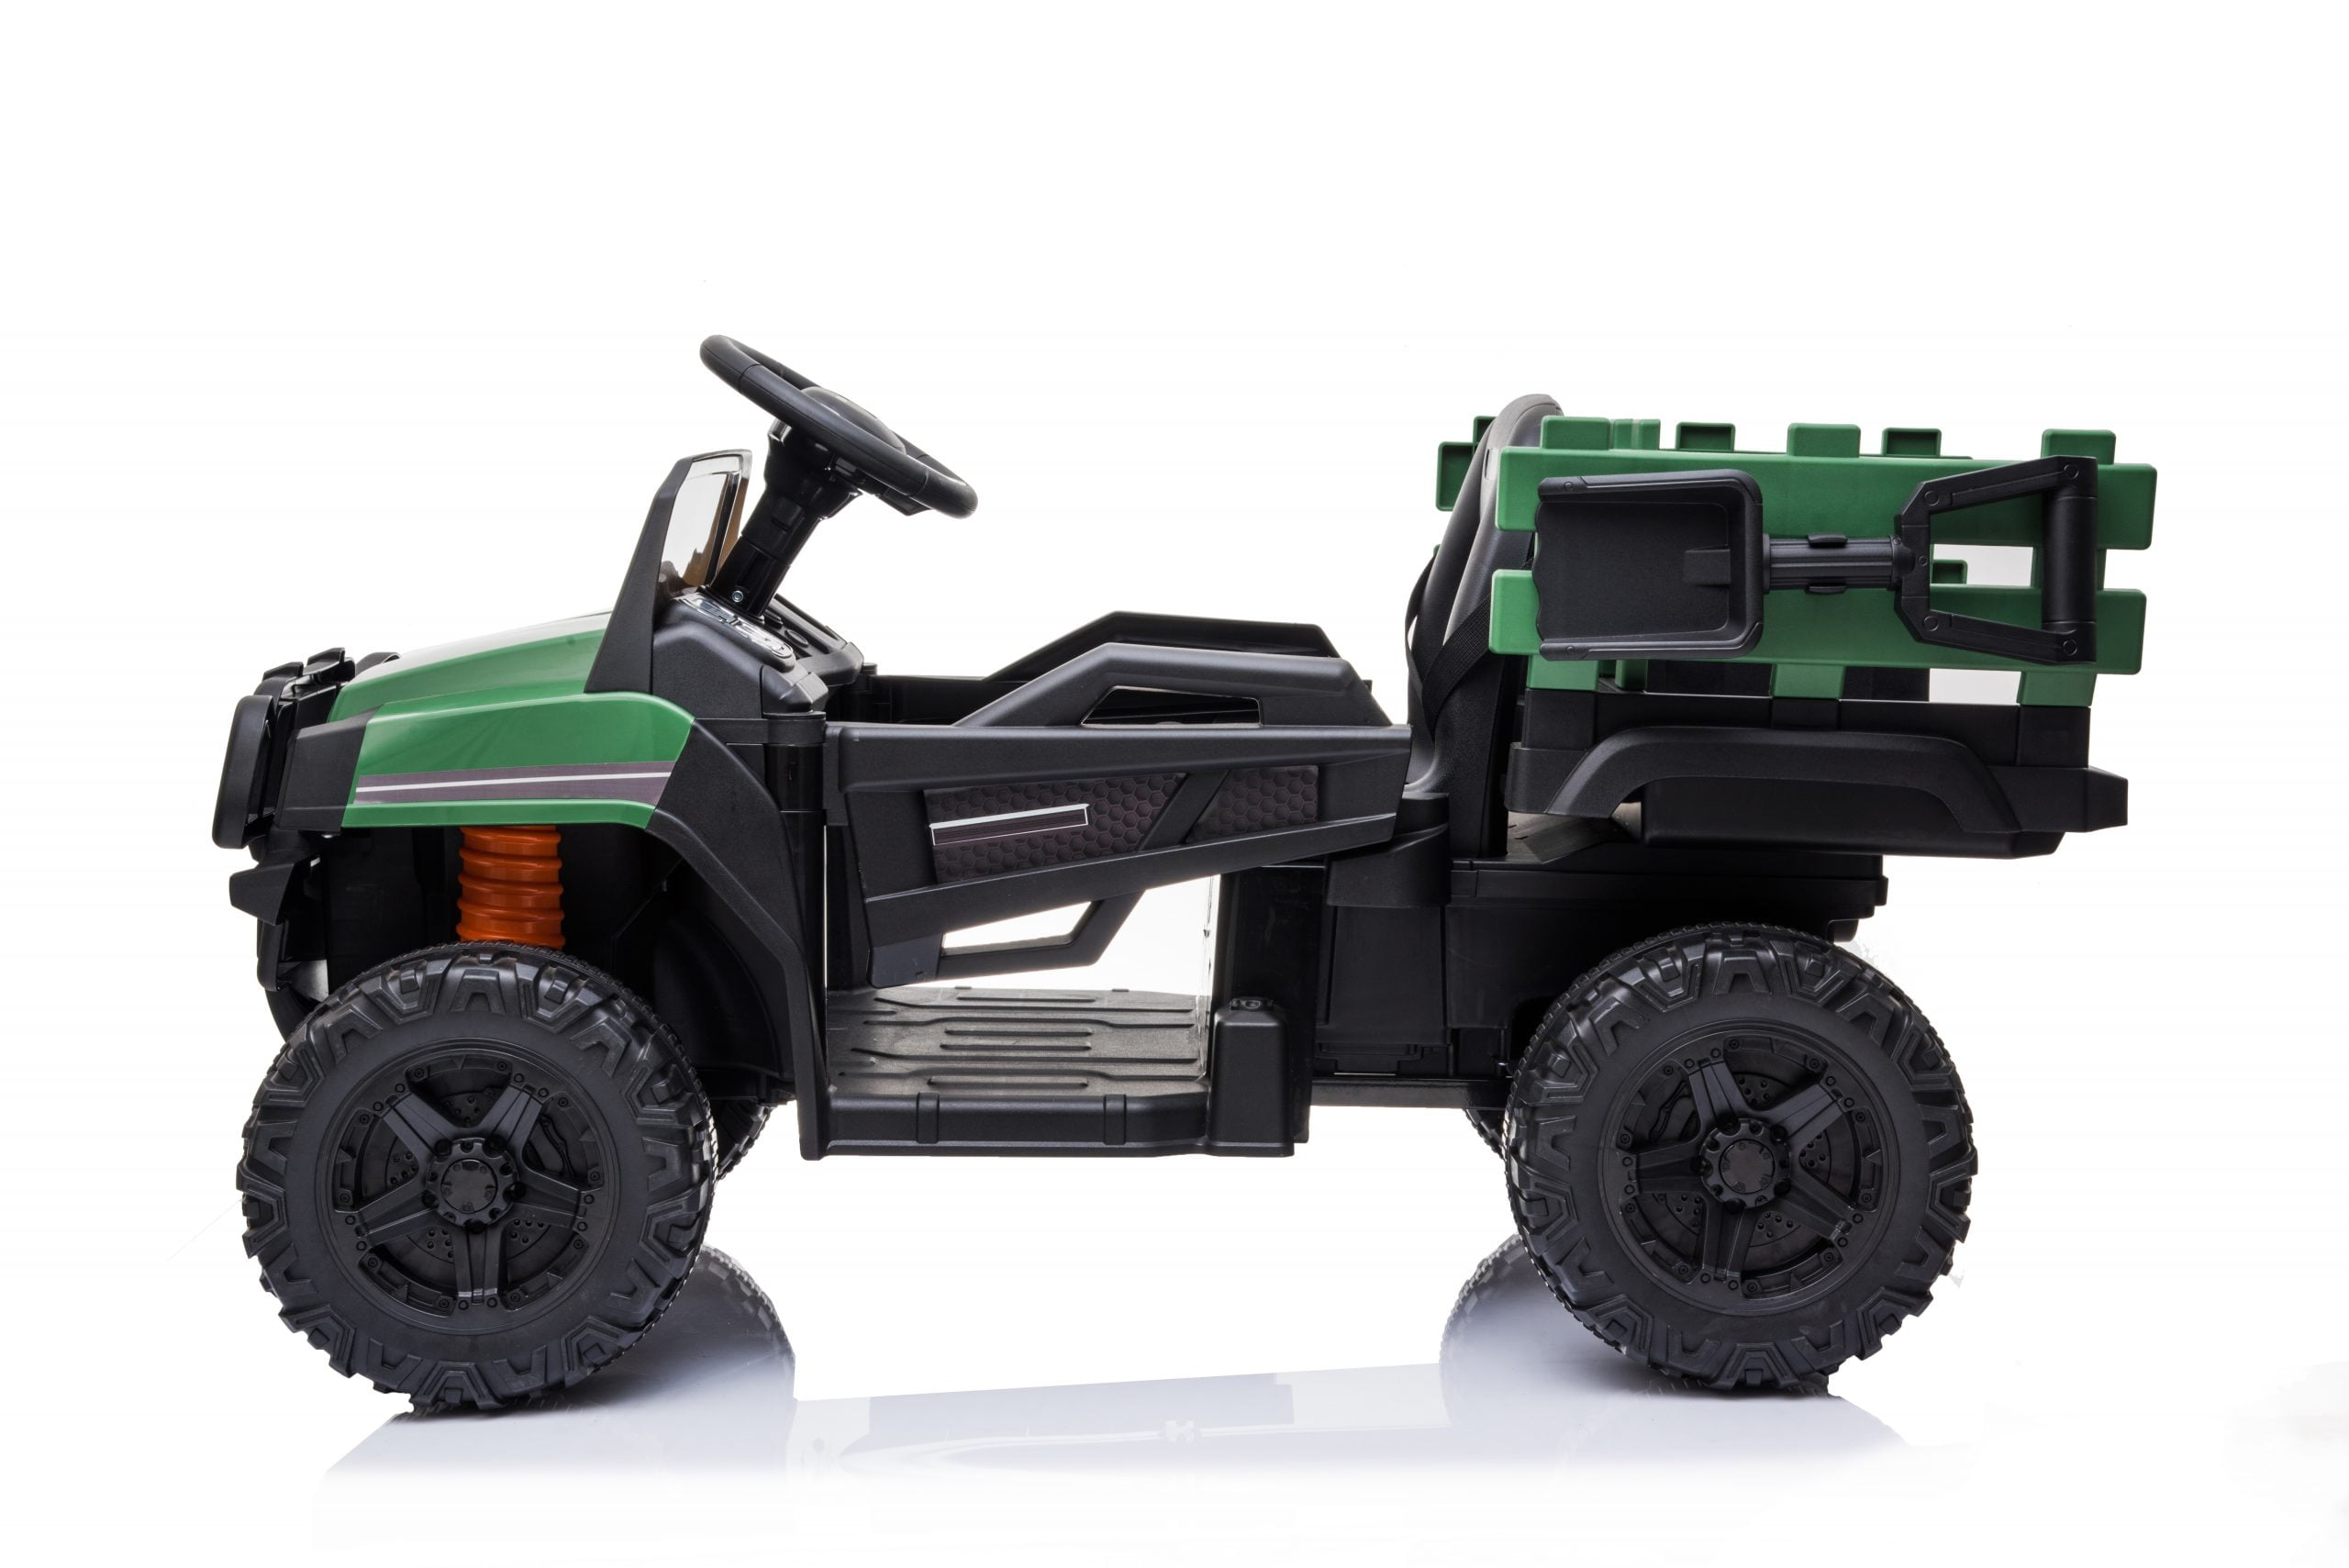 12v Rechargeable Battery Agricultural Vehicle Toy